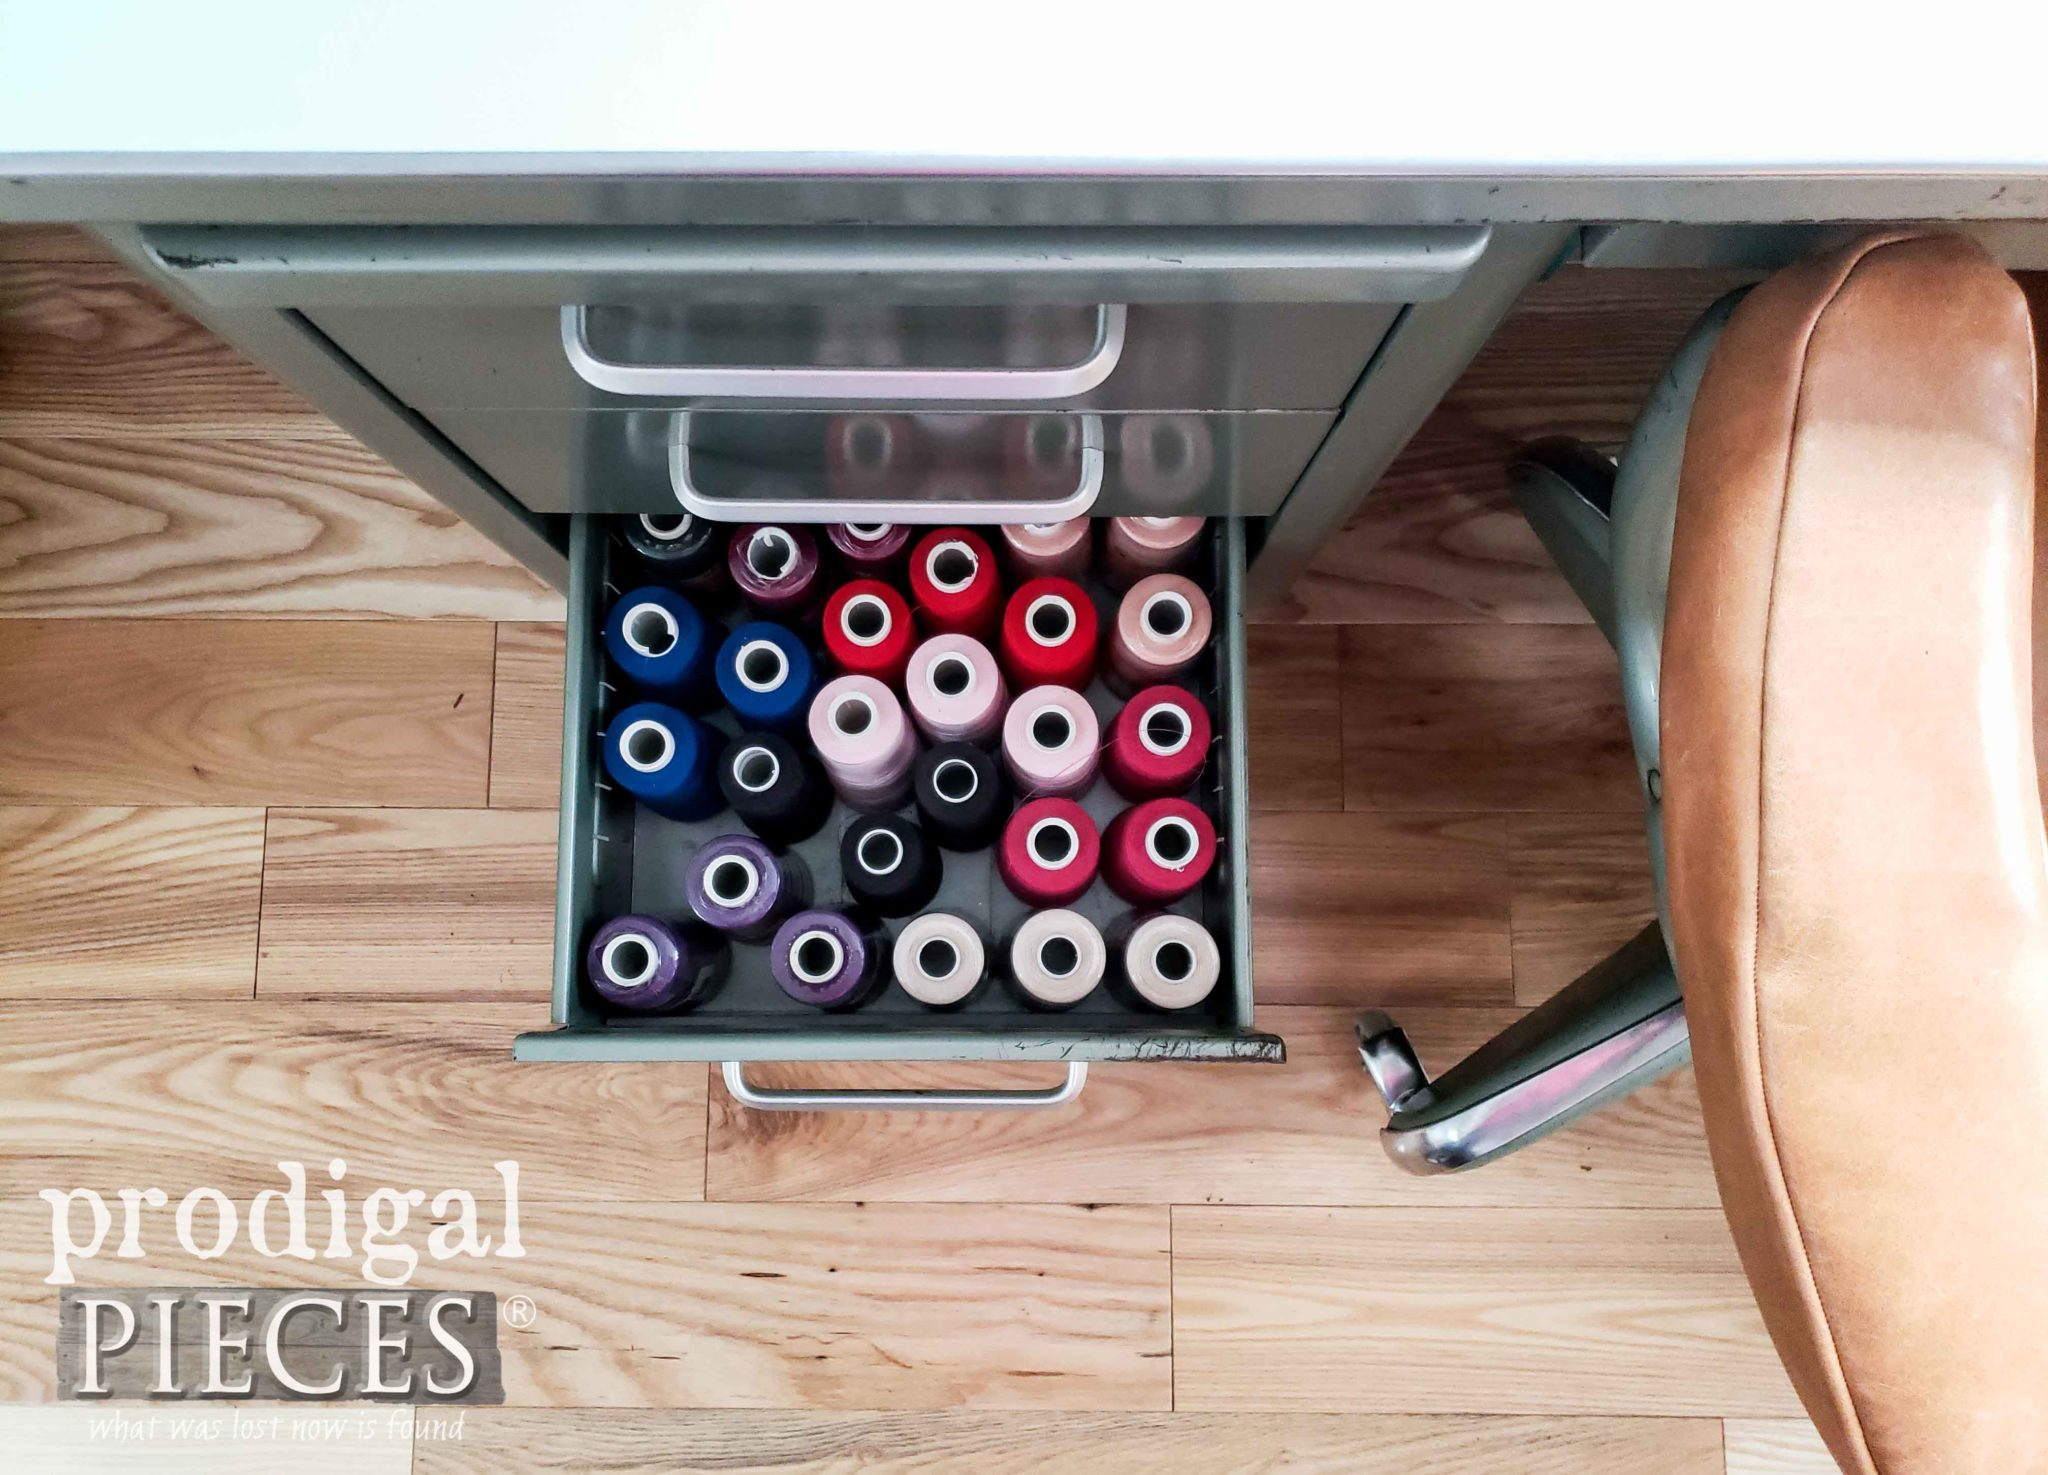 Open Drawer of Spools of Thread in Vintage Office Desk | Prodigal Pieces | prodigalpieces.com #prodigalpieces #diy #retro #home #furniture #sewing #vintage